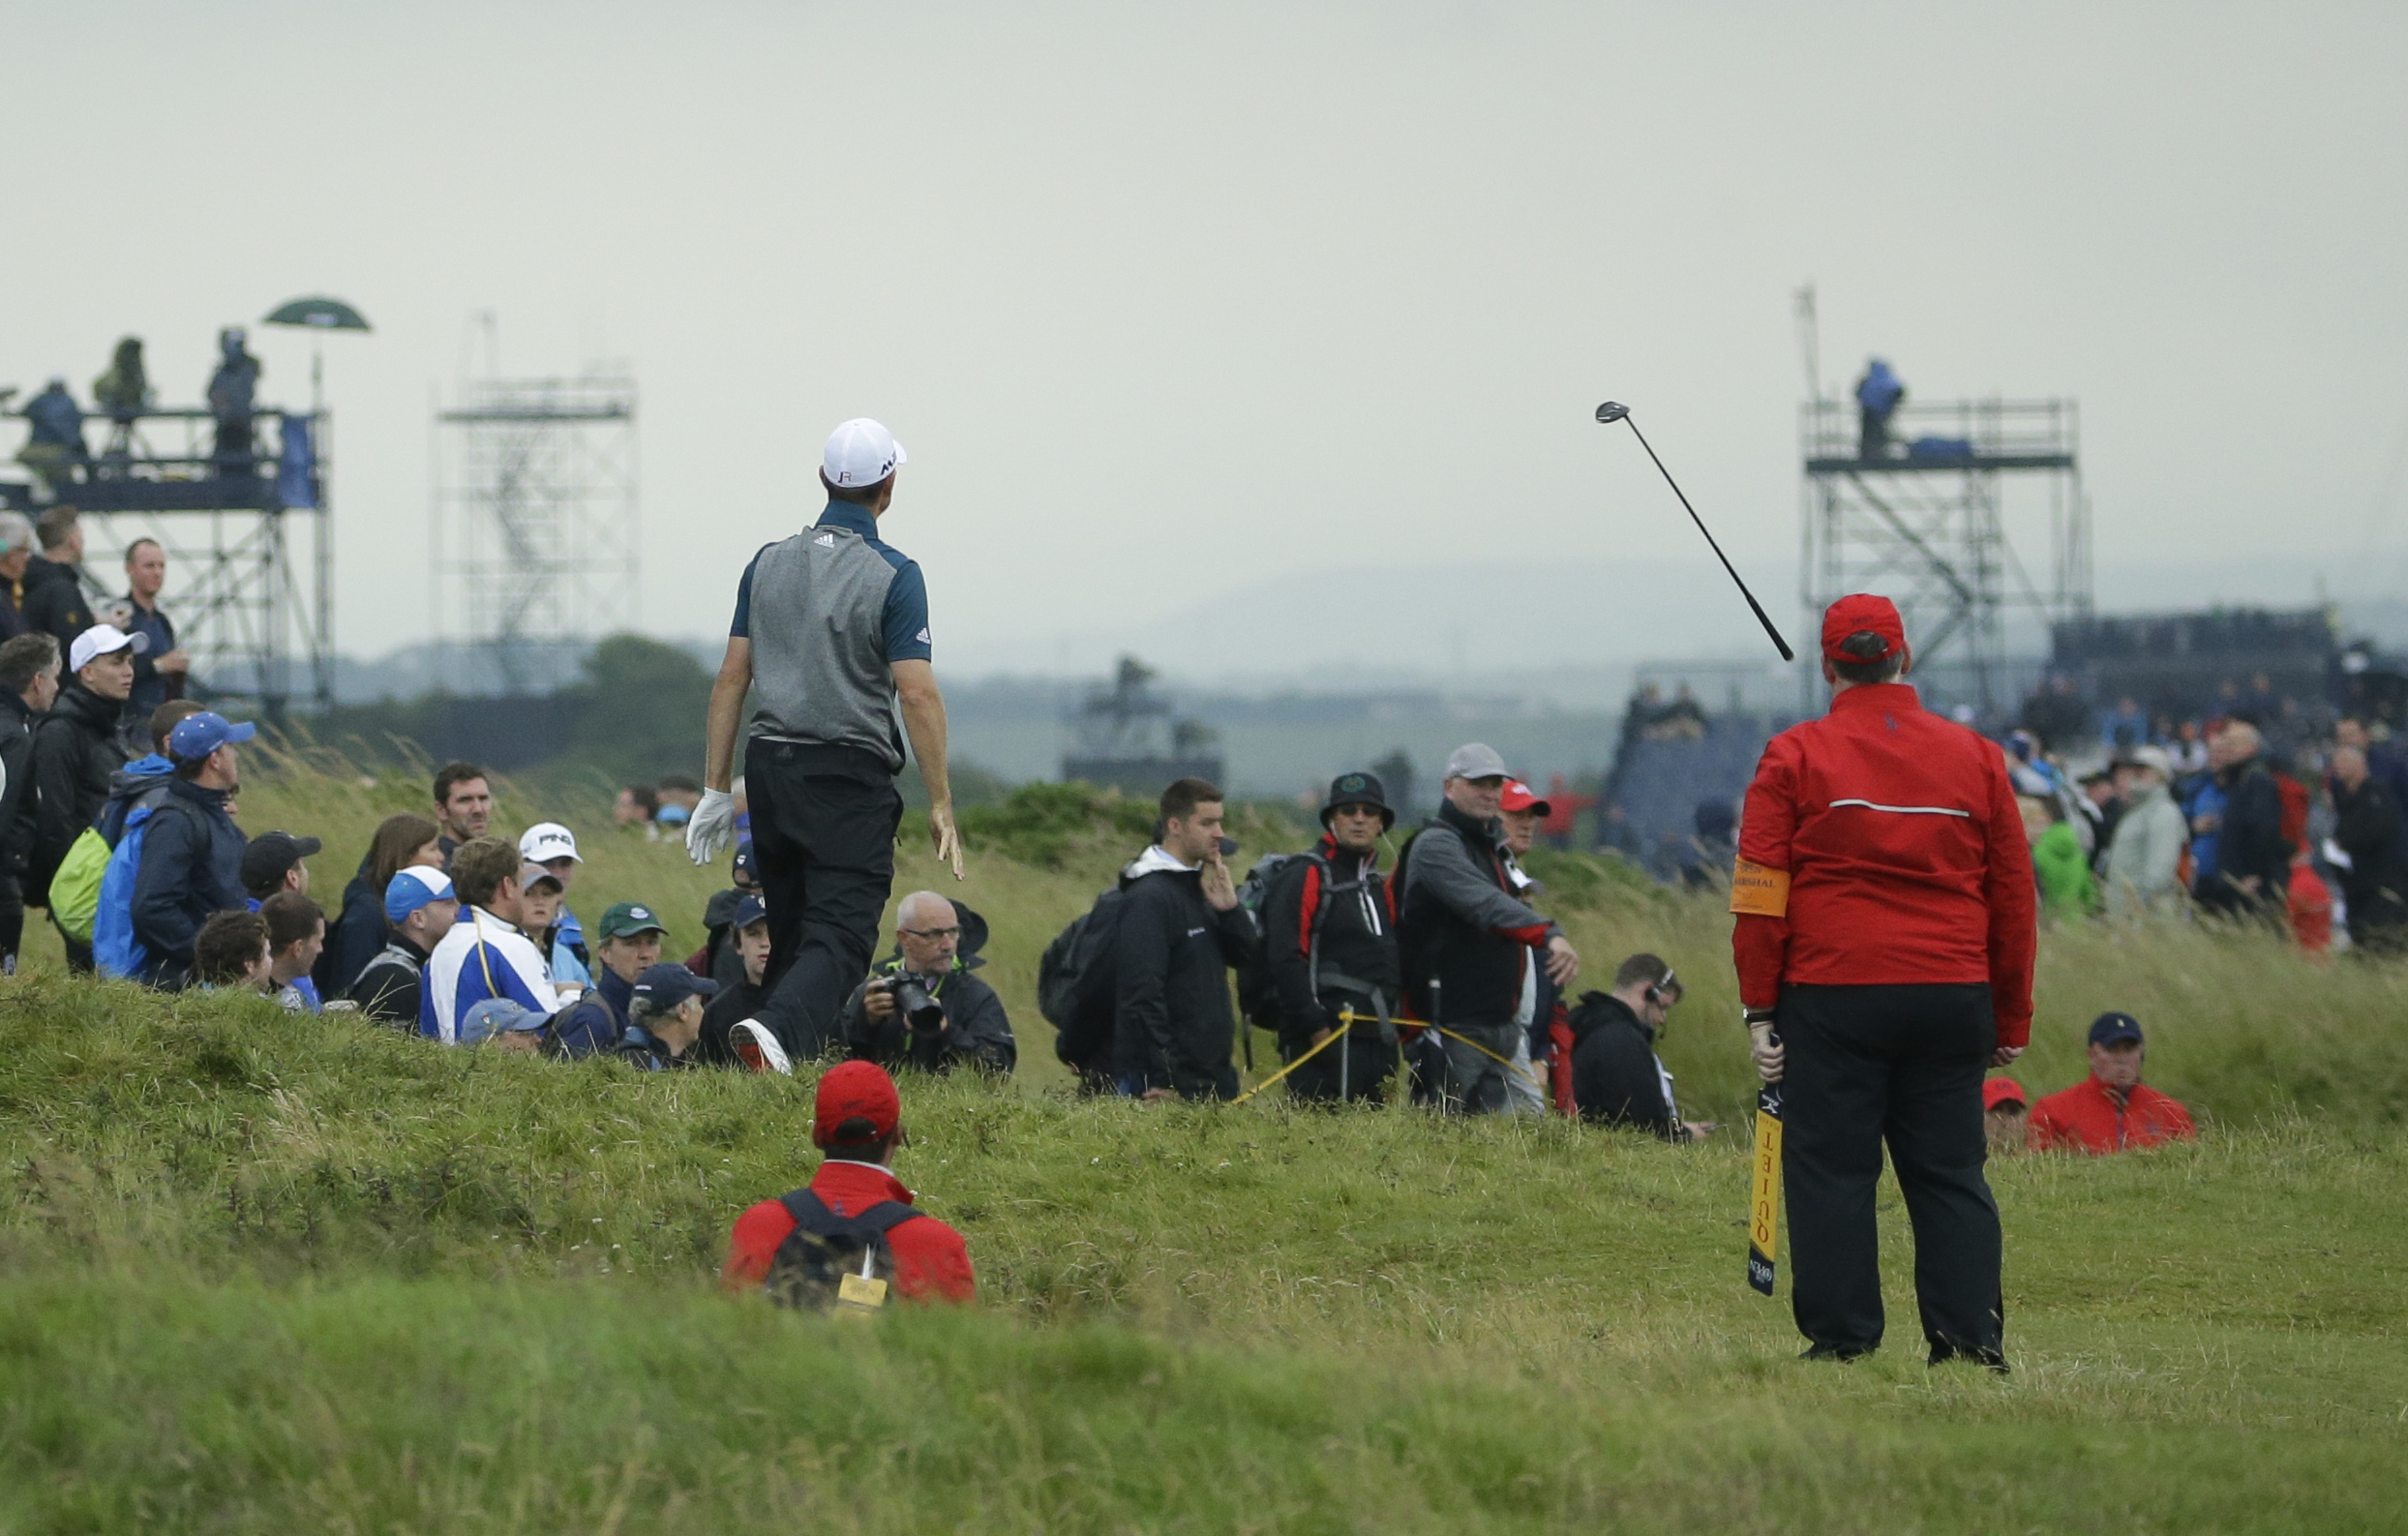 Justin Rose of England throws his club after a poor shot out of the rough on the 2nd hole during the second round of the British Open Golf Championship at the Royal Troon Golf Club in Troon, Scotland, Friday, July 15, 2016. (AP Photo/Matt Dunham)